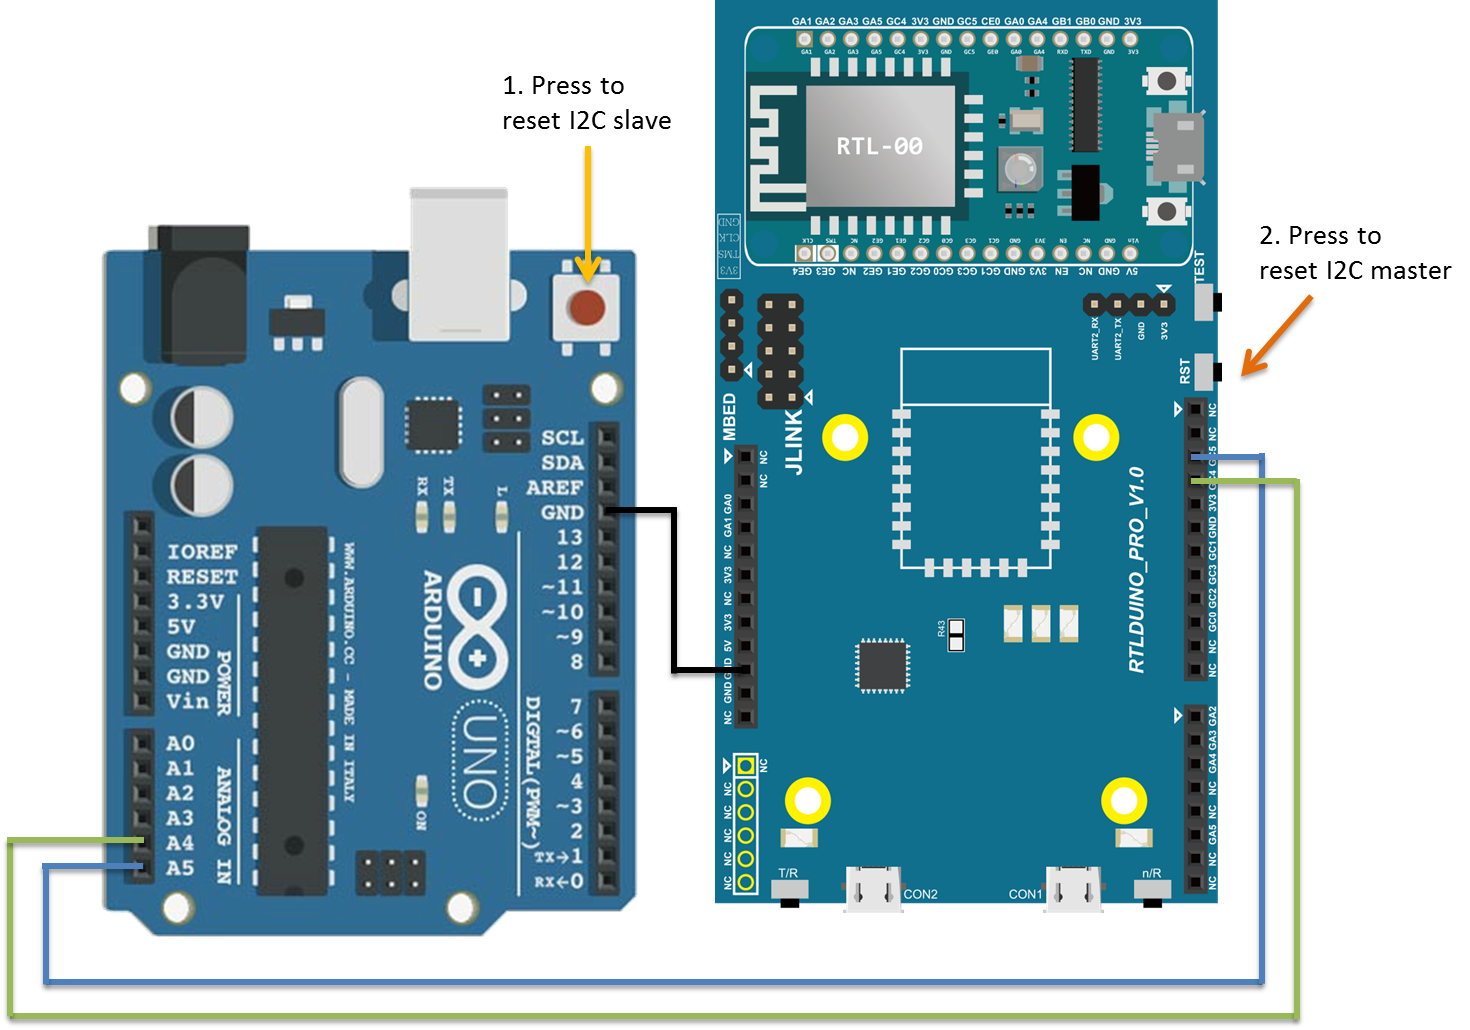 Ameba Arduino Rtl8710 I2c Communicate With Uno Via Wiring Messages Open The Ide Of And Serial Monitor Tools In You Can See Printed